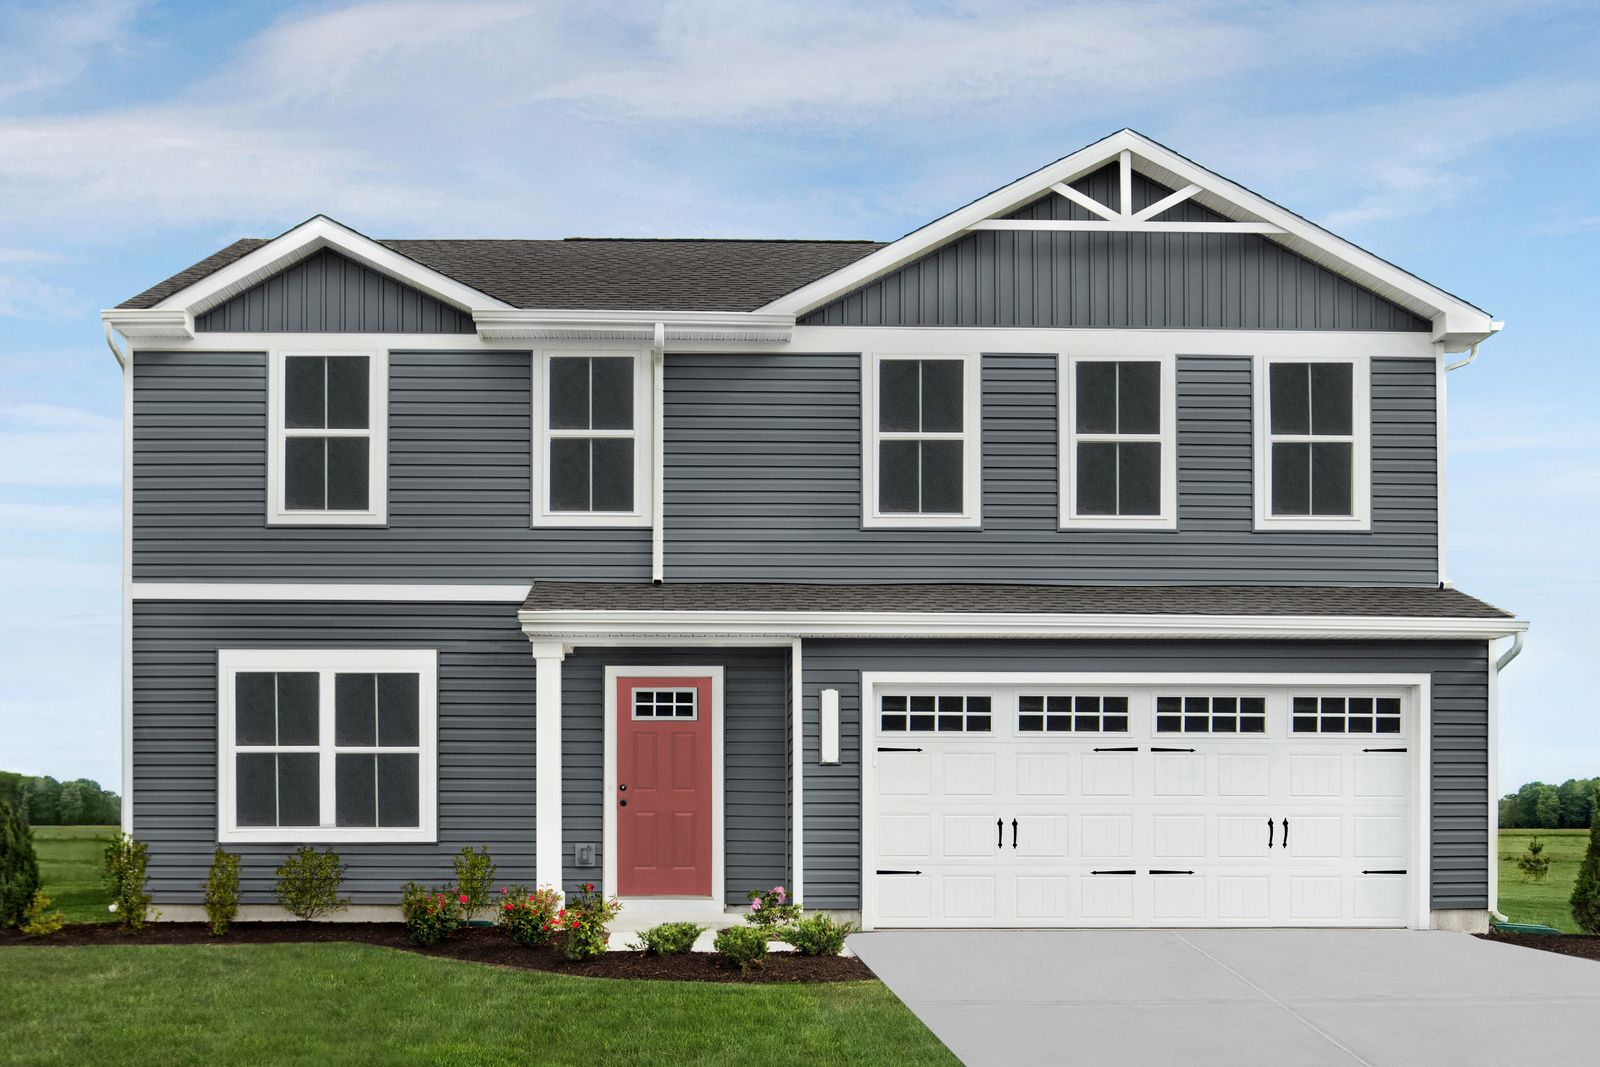 WELCOME HOME TO ASHTON POINT:Own a new, open concept home with 3-5 bedrooms & attached 2-car garage with little to no money down! Near I-270, I-71 and Rt. 315. From mid $200s.Click here to schedule your visit!